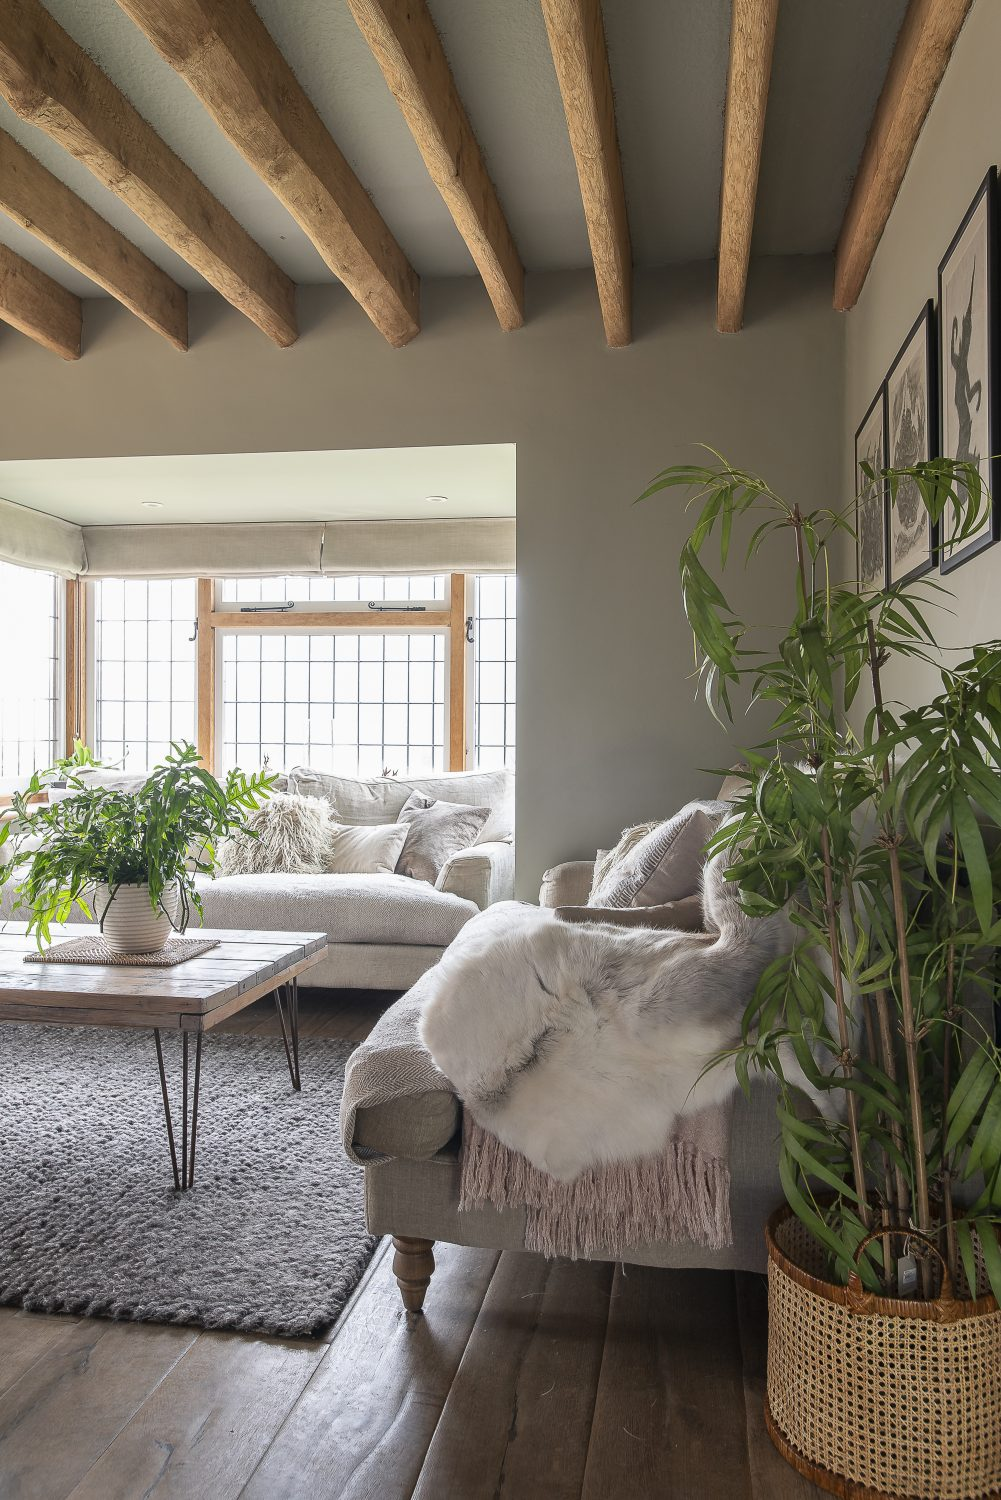 Justine restructured the interior, taking out internal walls and replacing windows with French doors and tri-folds to let light flood in from the front, the side and rear of the house